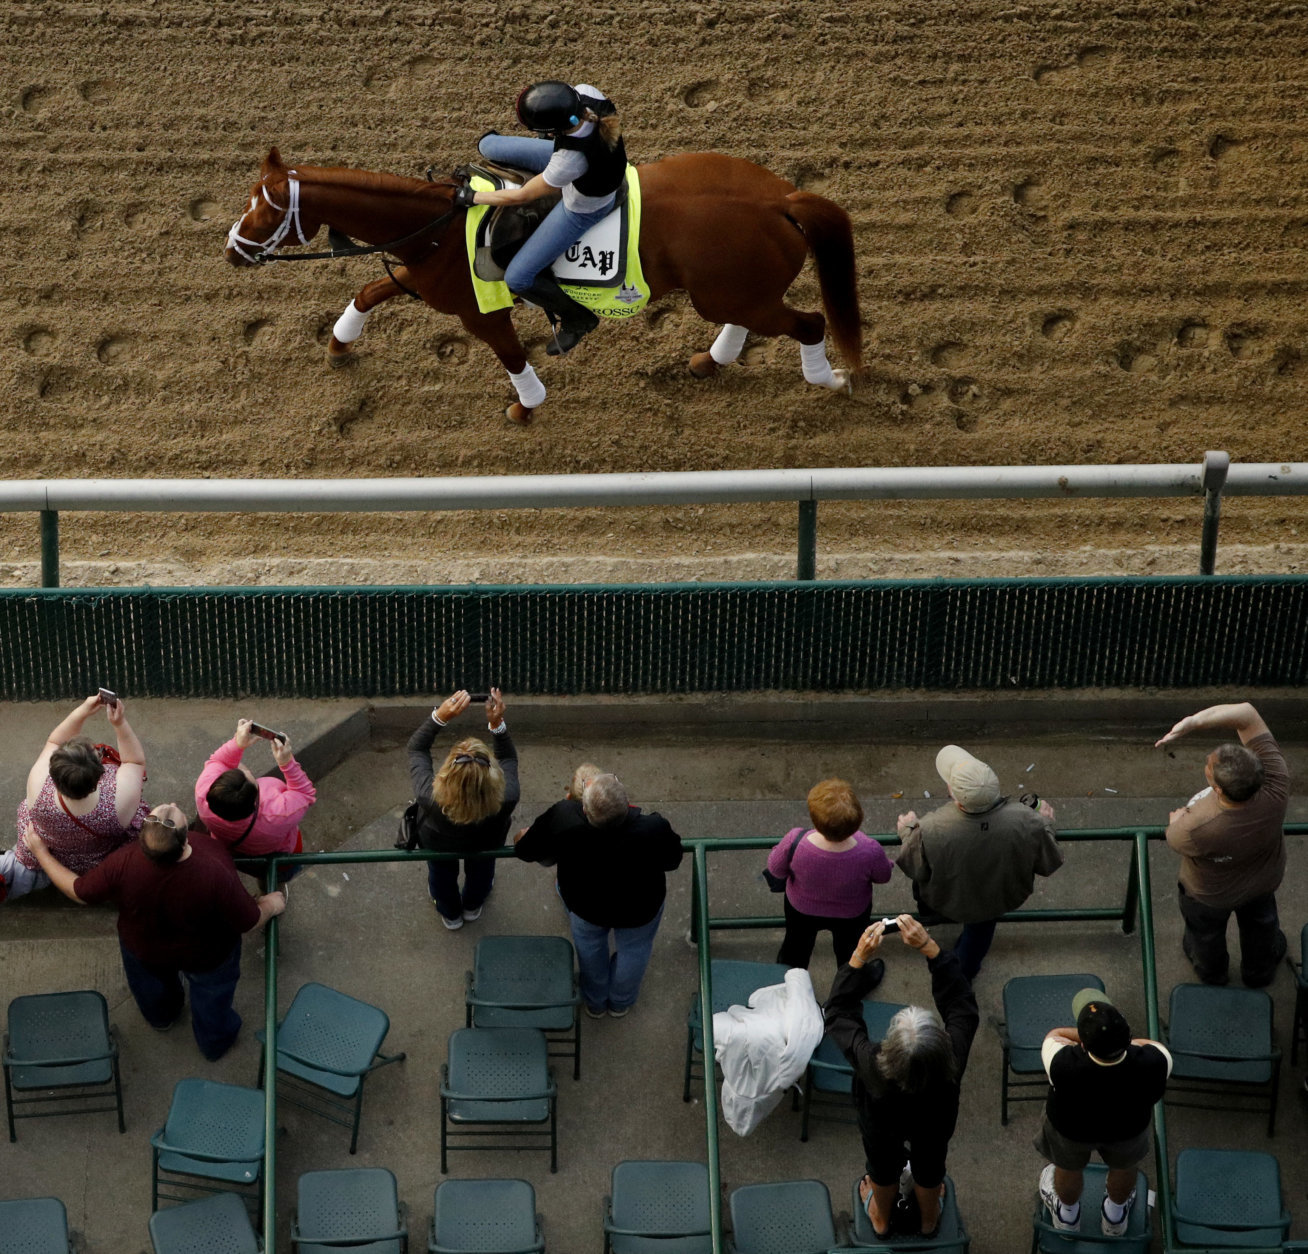 Kentucky Derby entrant Vino Rosso trains during a morning workout at Churchill Downs Wednesday, May 2, 2018, in Louisville, Ky. The 144th running of the Kentucky Derby is scheduled for Saturday, May 5. (AP Photo/Charlie Riedel)